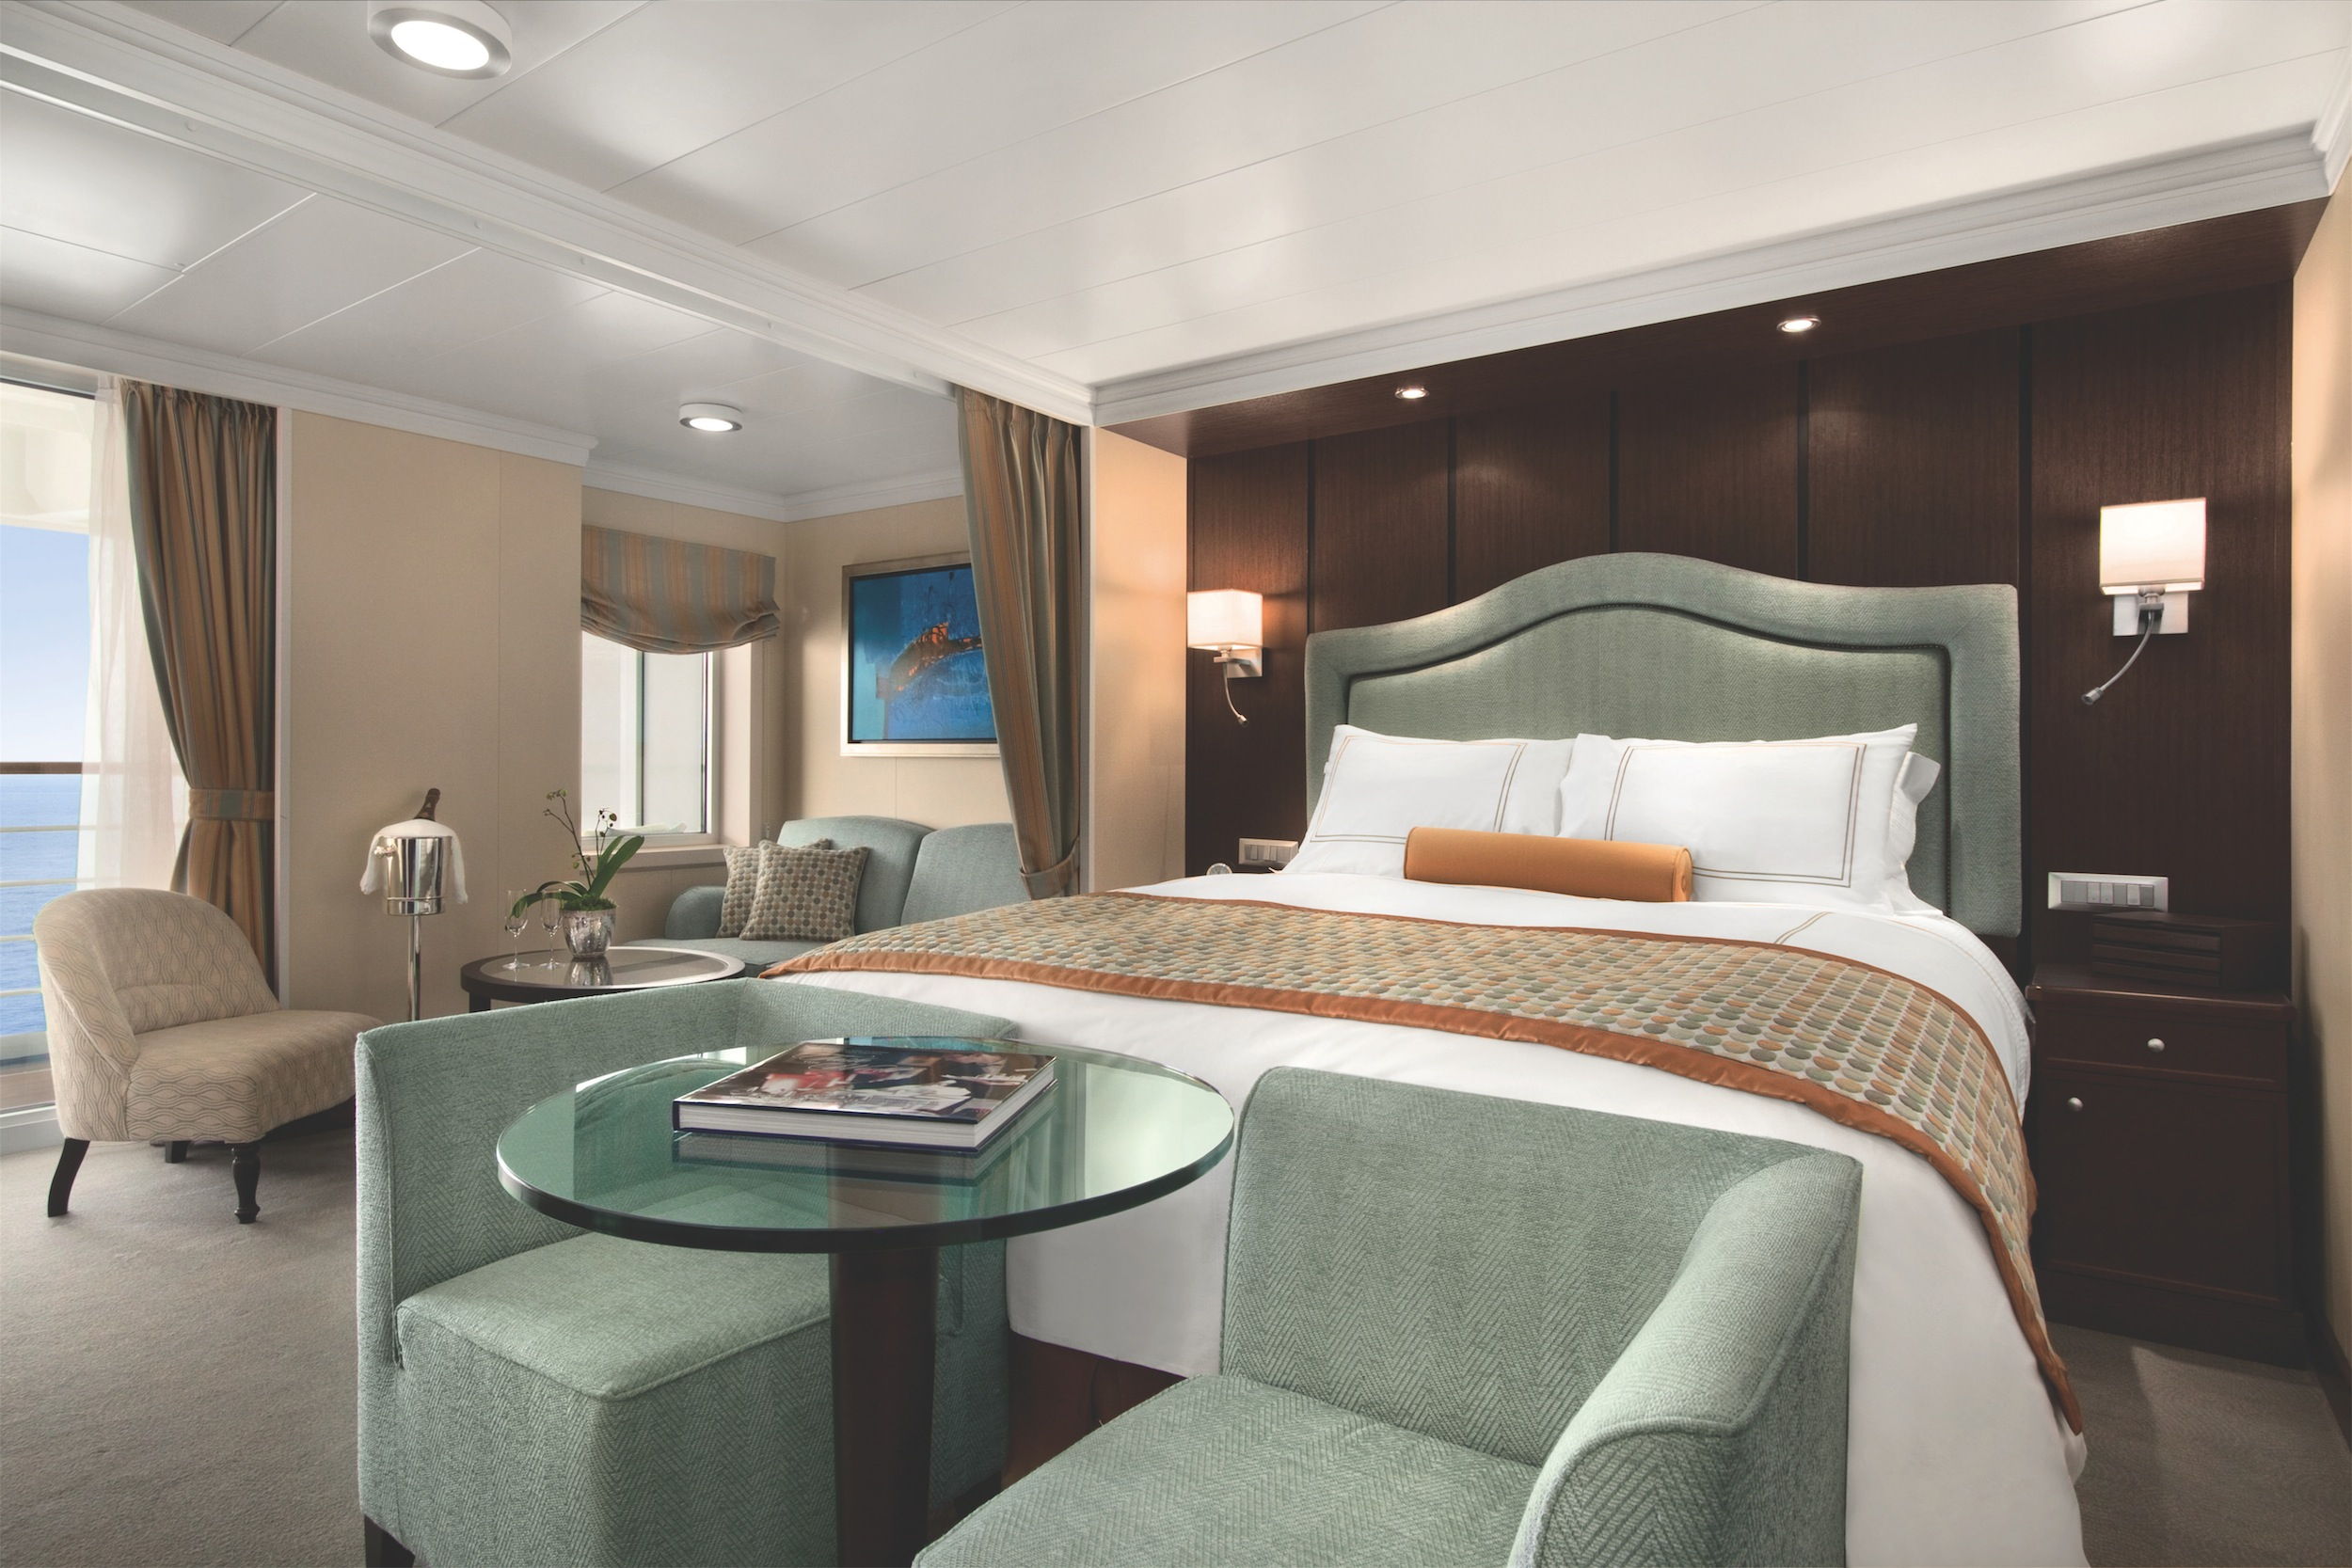 Oceania Cruises Oceania Class Accommodation Penthouse Suite.jpg